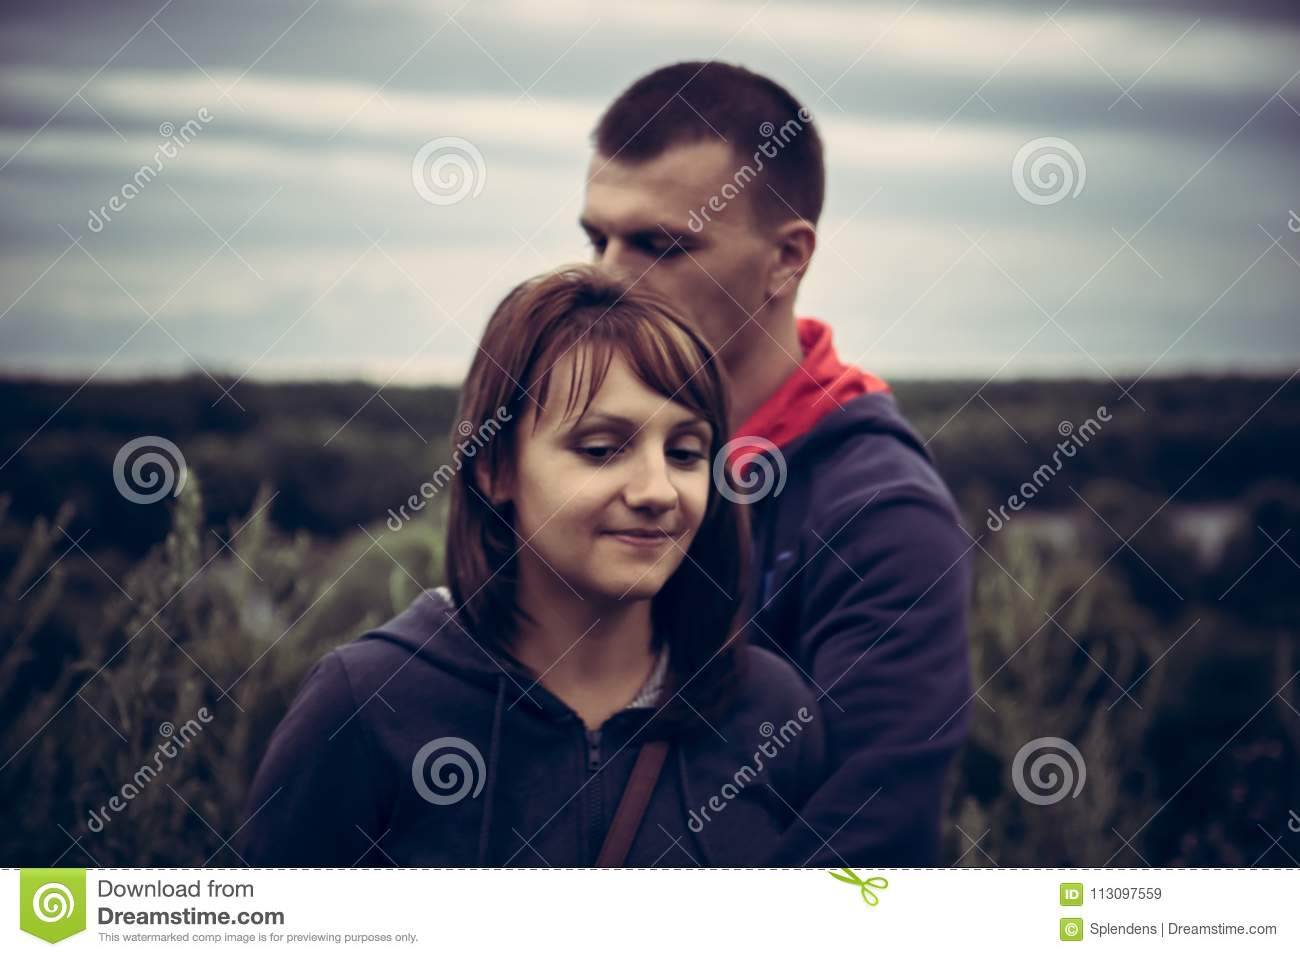 Young couple man woman together opposite dramatic sky concept love togetherness forgiveness